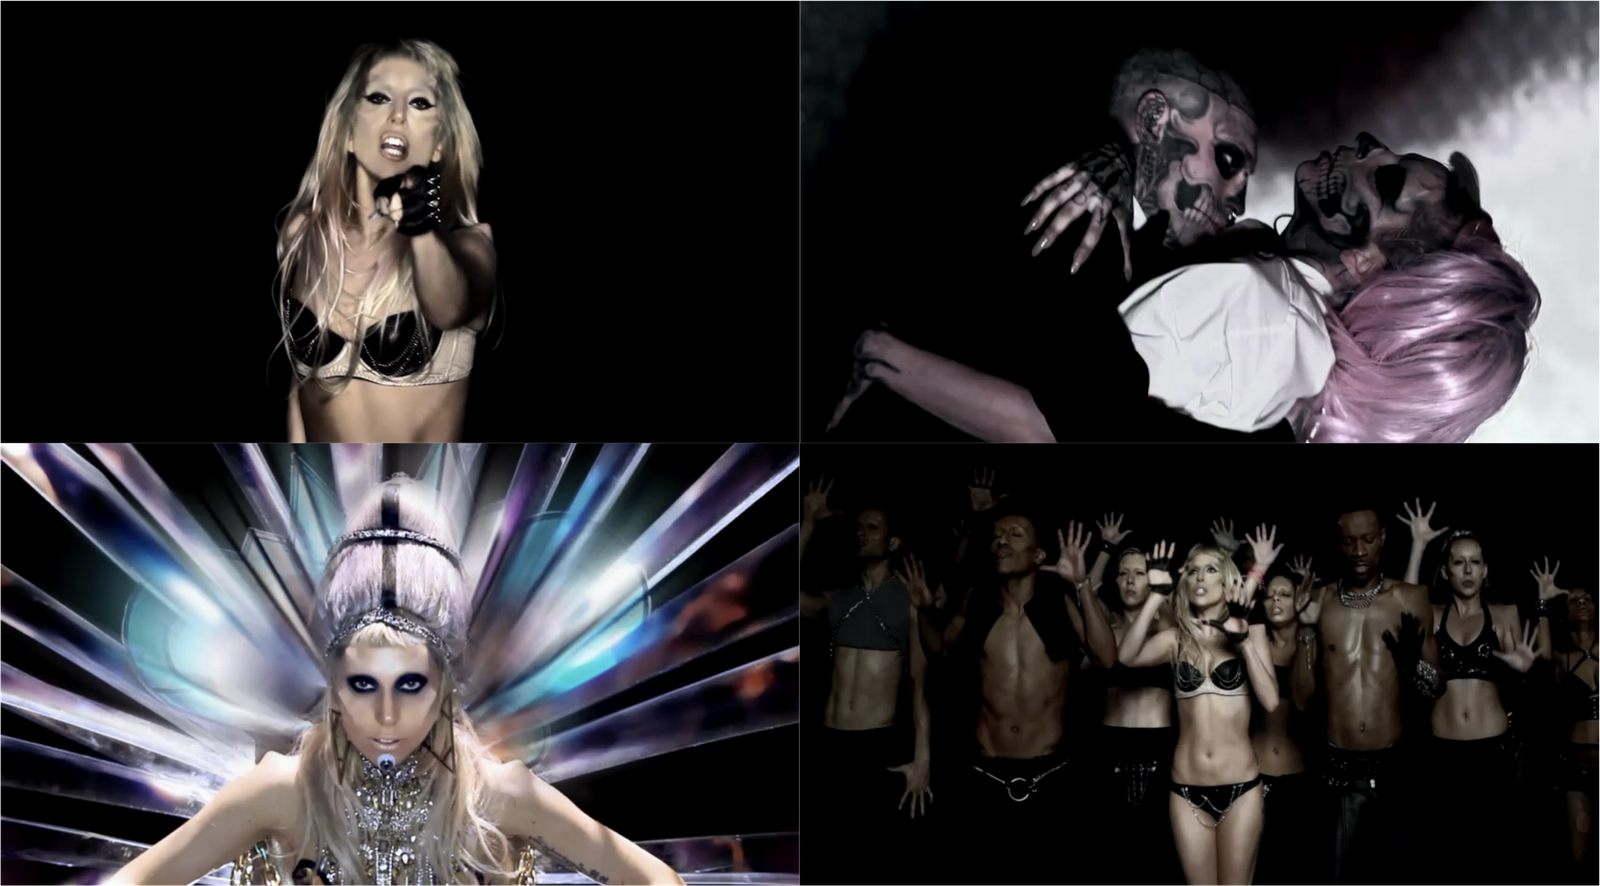 http://2.bp.blogspot.com/-gtgYZ77O2ok/TYK7tA6dSOI/AAAAAAAAEeA/Foem6-bAvlI/s1600/lady-gaga-born-this-way-music-video3%255B1%255D.png